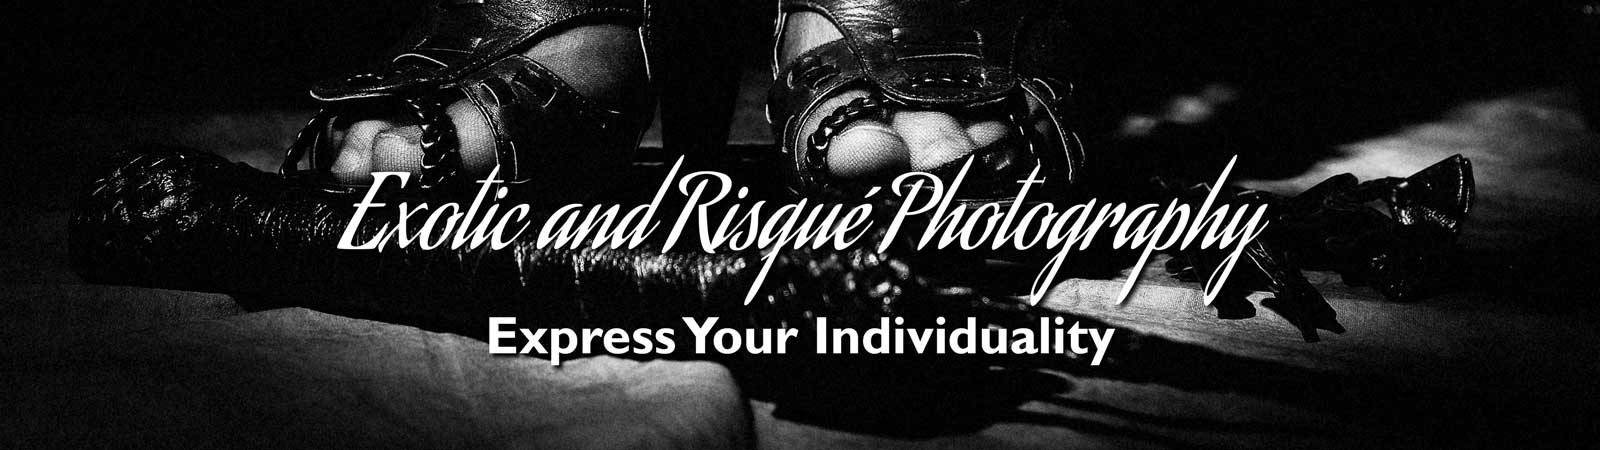 exotic and risque photography